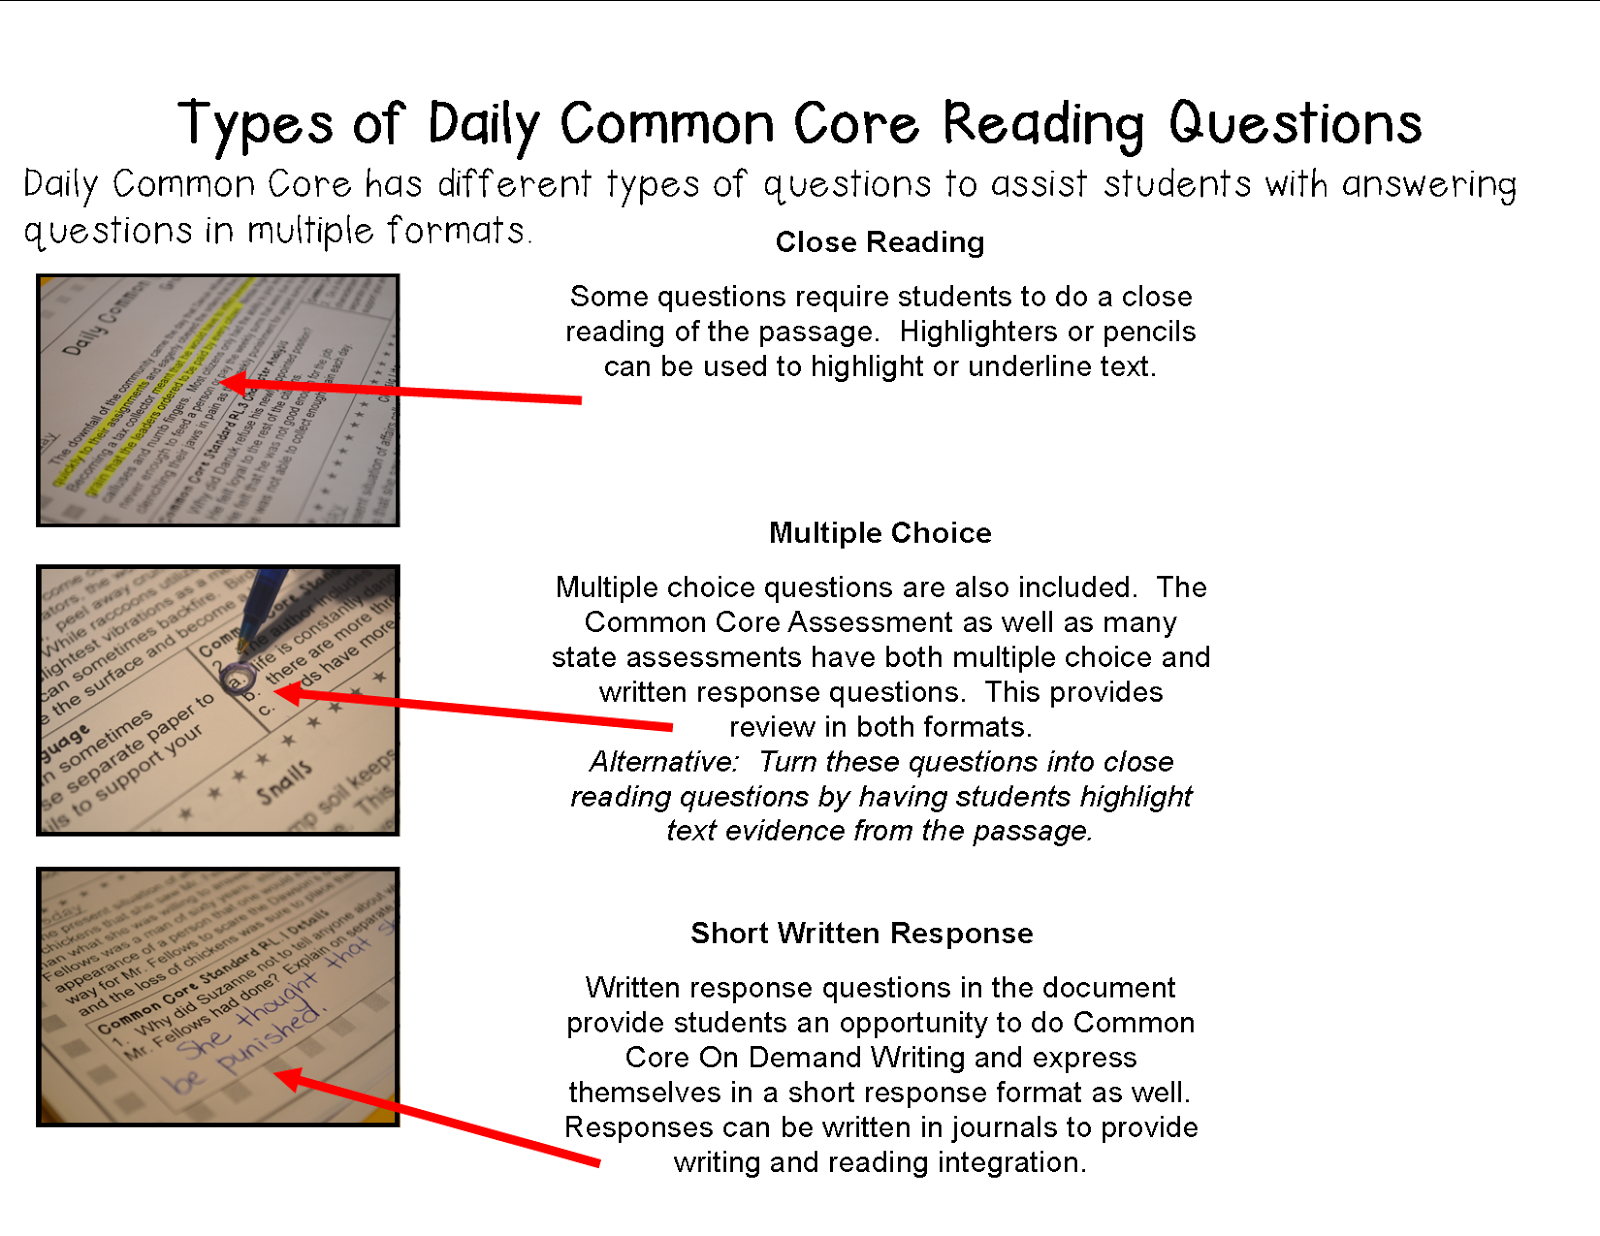 worksheet Common Core Reading Comprehension Worksheets 4th Grade literacy math ideas free close reading passage of the week click a grade level link for daily common core practice quick passages in 5 minutes day